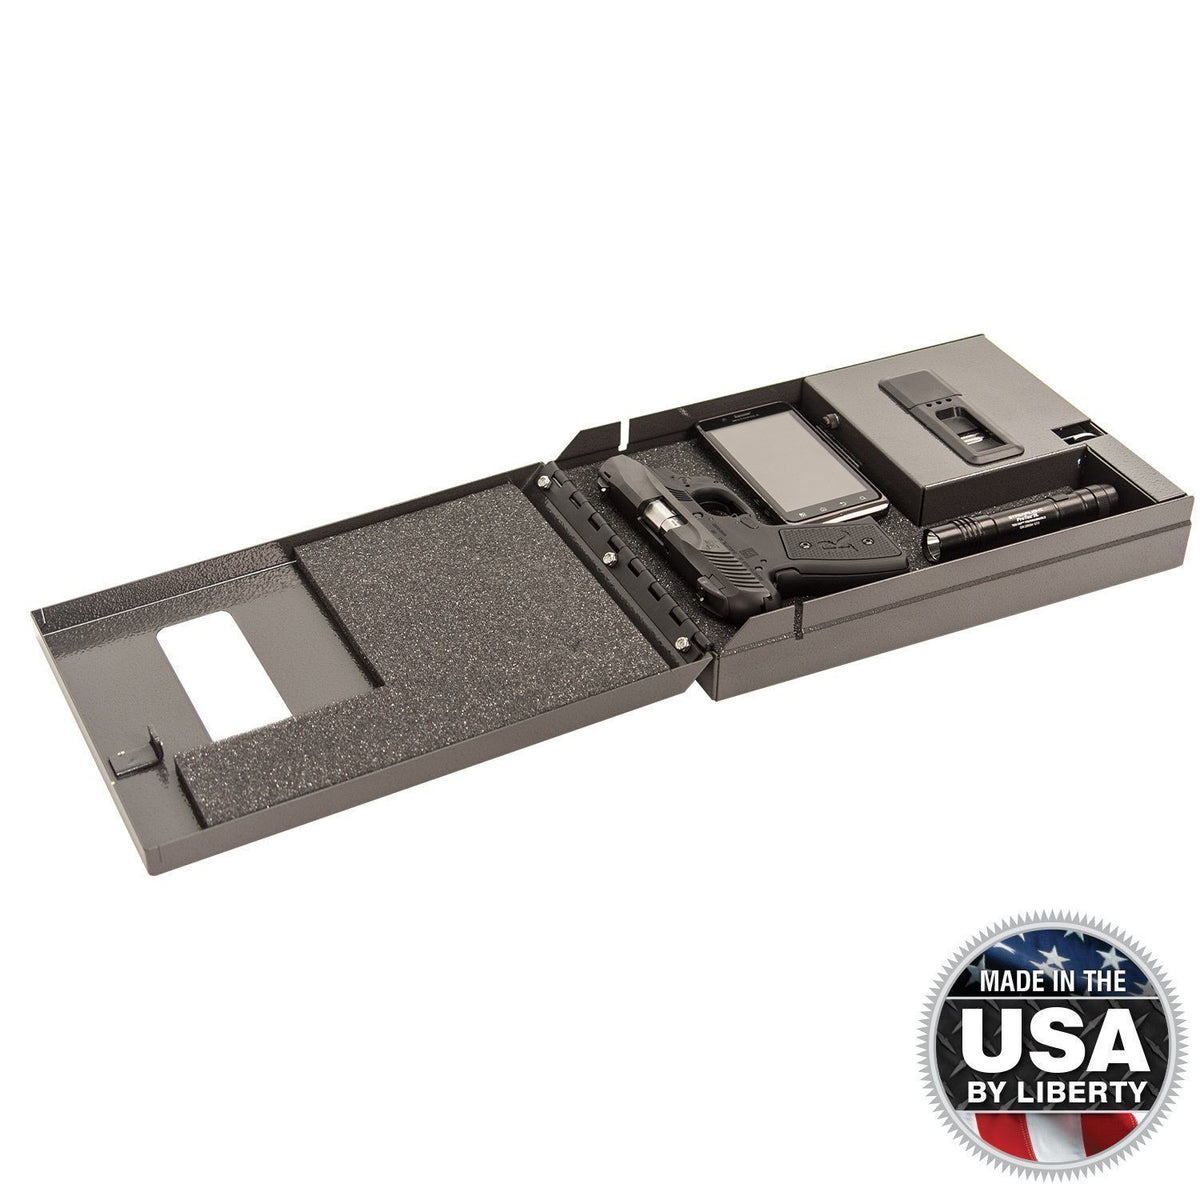 Liberty Safe-Compact Vault-Bio-metric-250-open